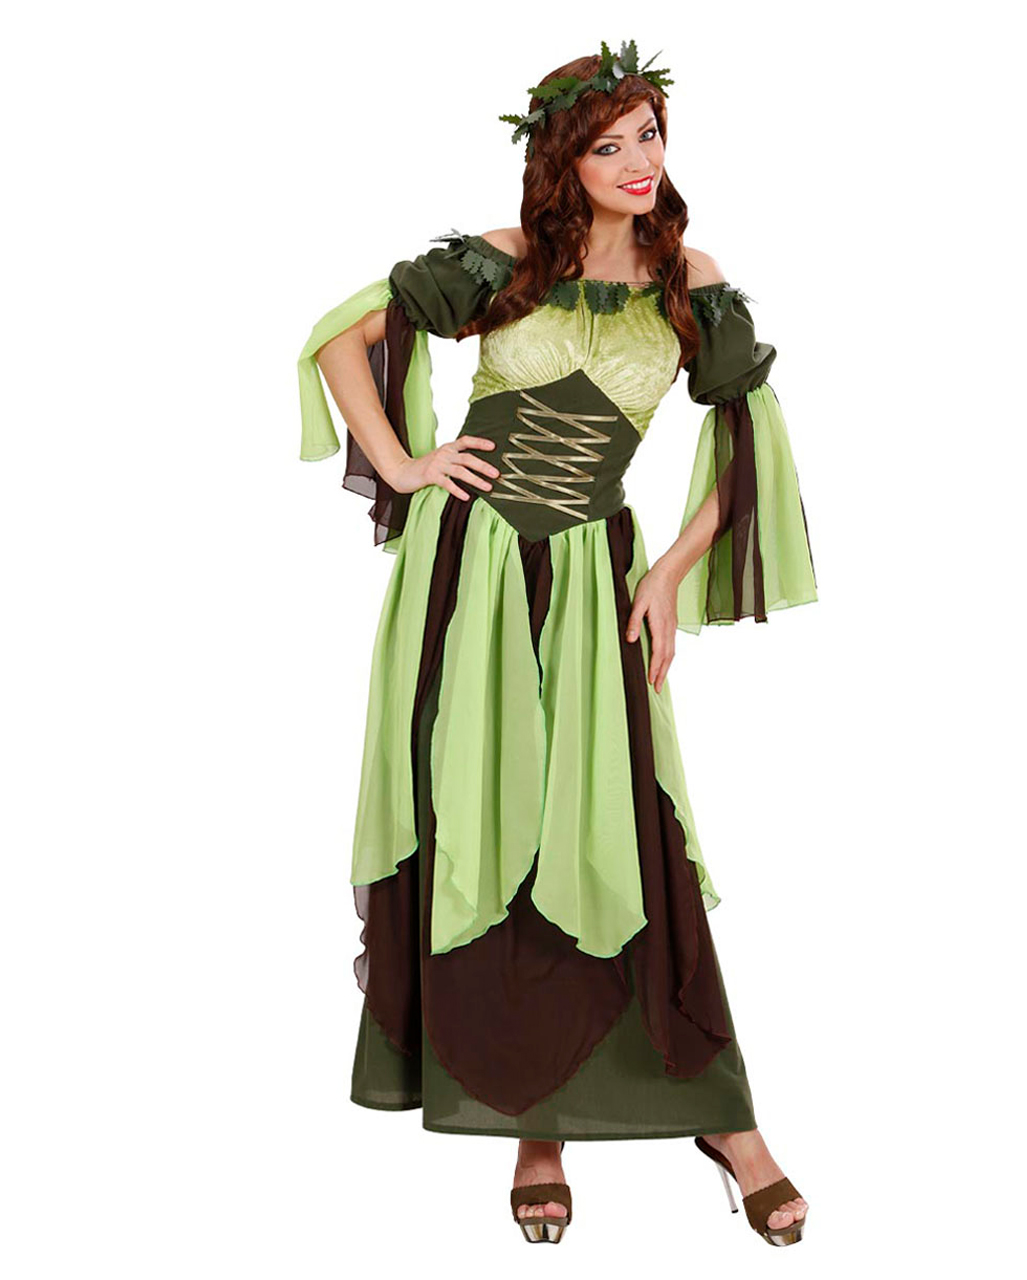 Mother nature costume deluxe fairy costume elf costume horror mother nature costume deluxe mother nature costume deluxe solutioingenieria Image collections